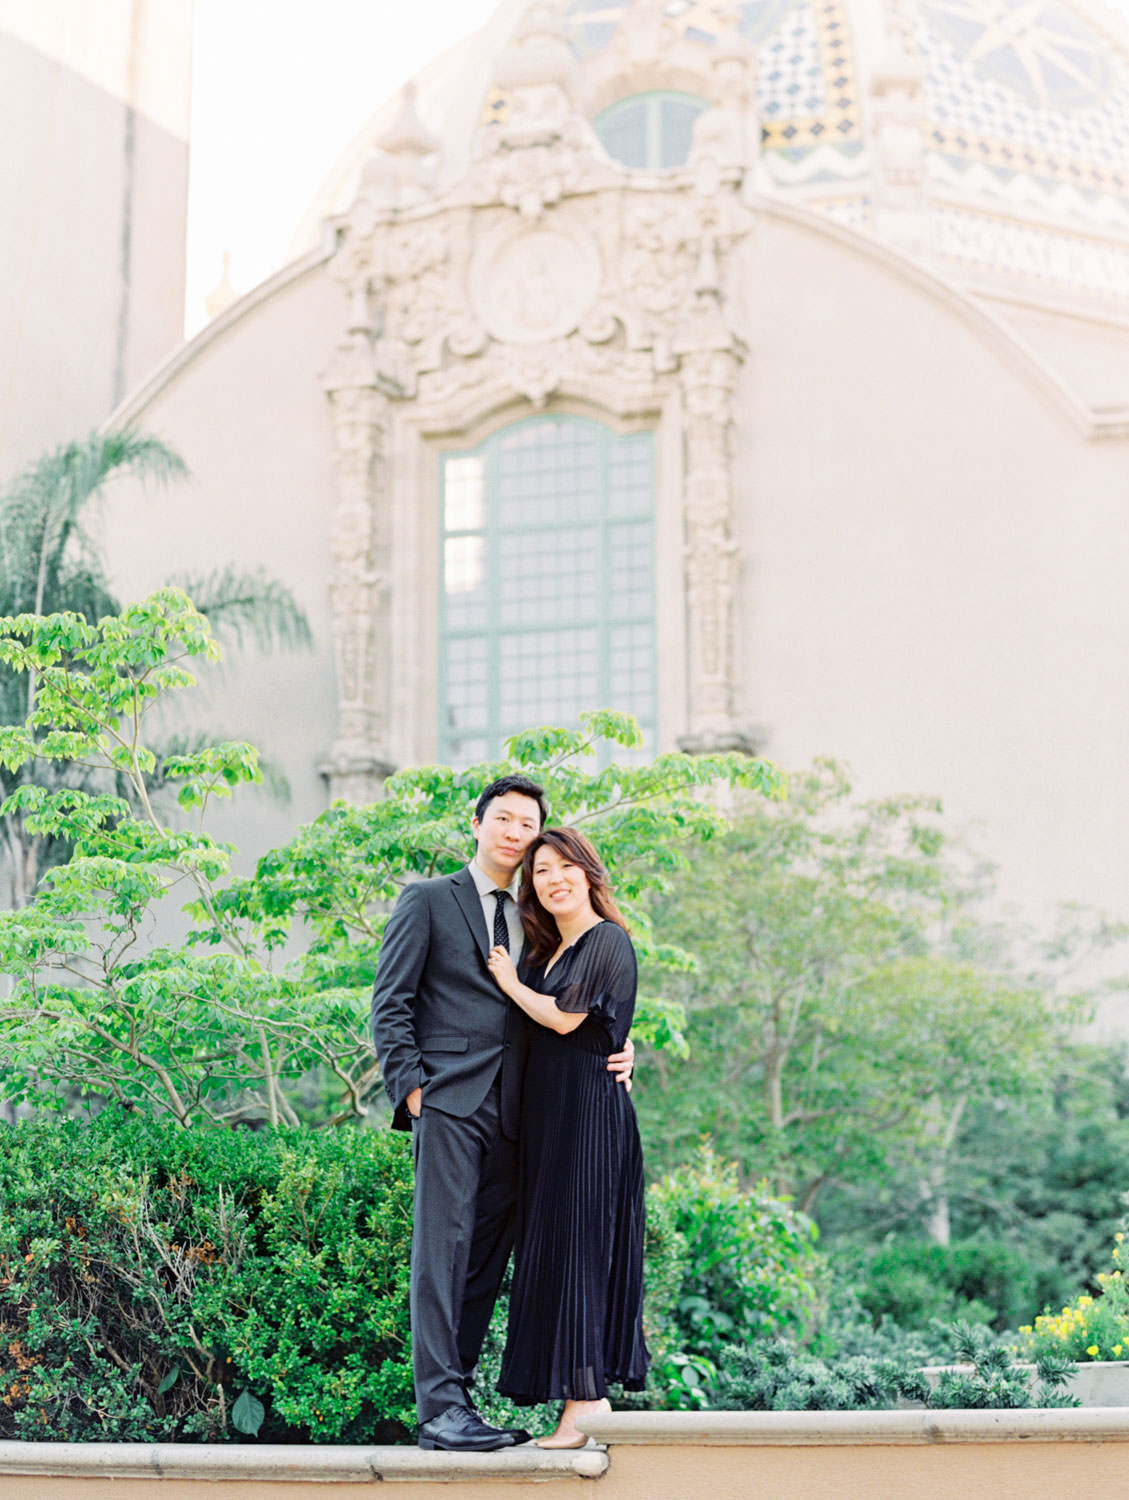 Engagement photos at Balboa Park bell tower with bride in black dress and groom in dark grey suit, film photographer Cavin Elizabeth in San Diego